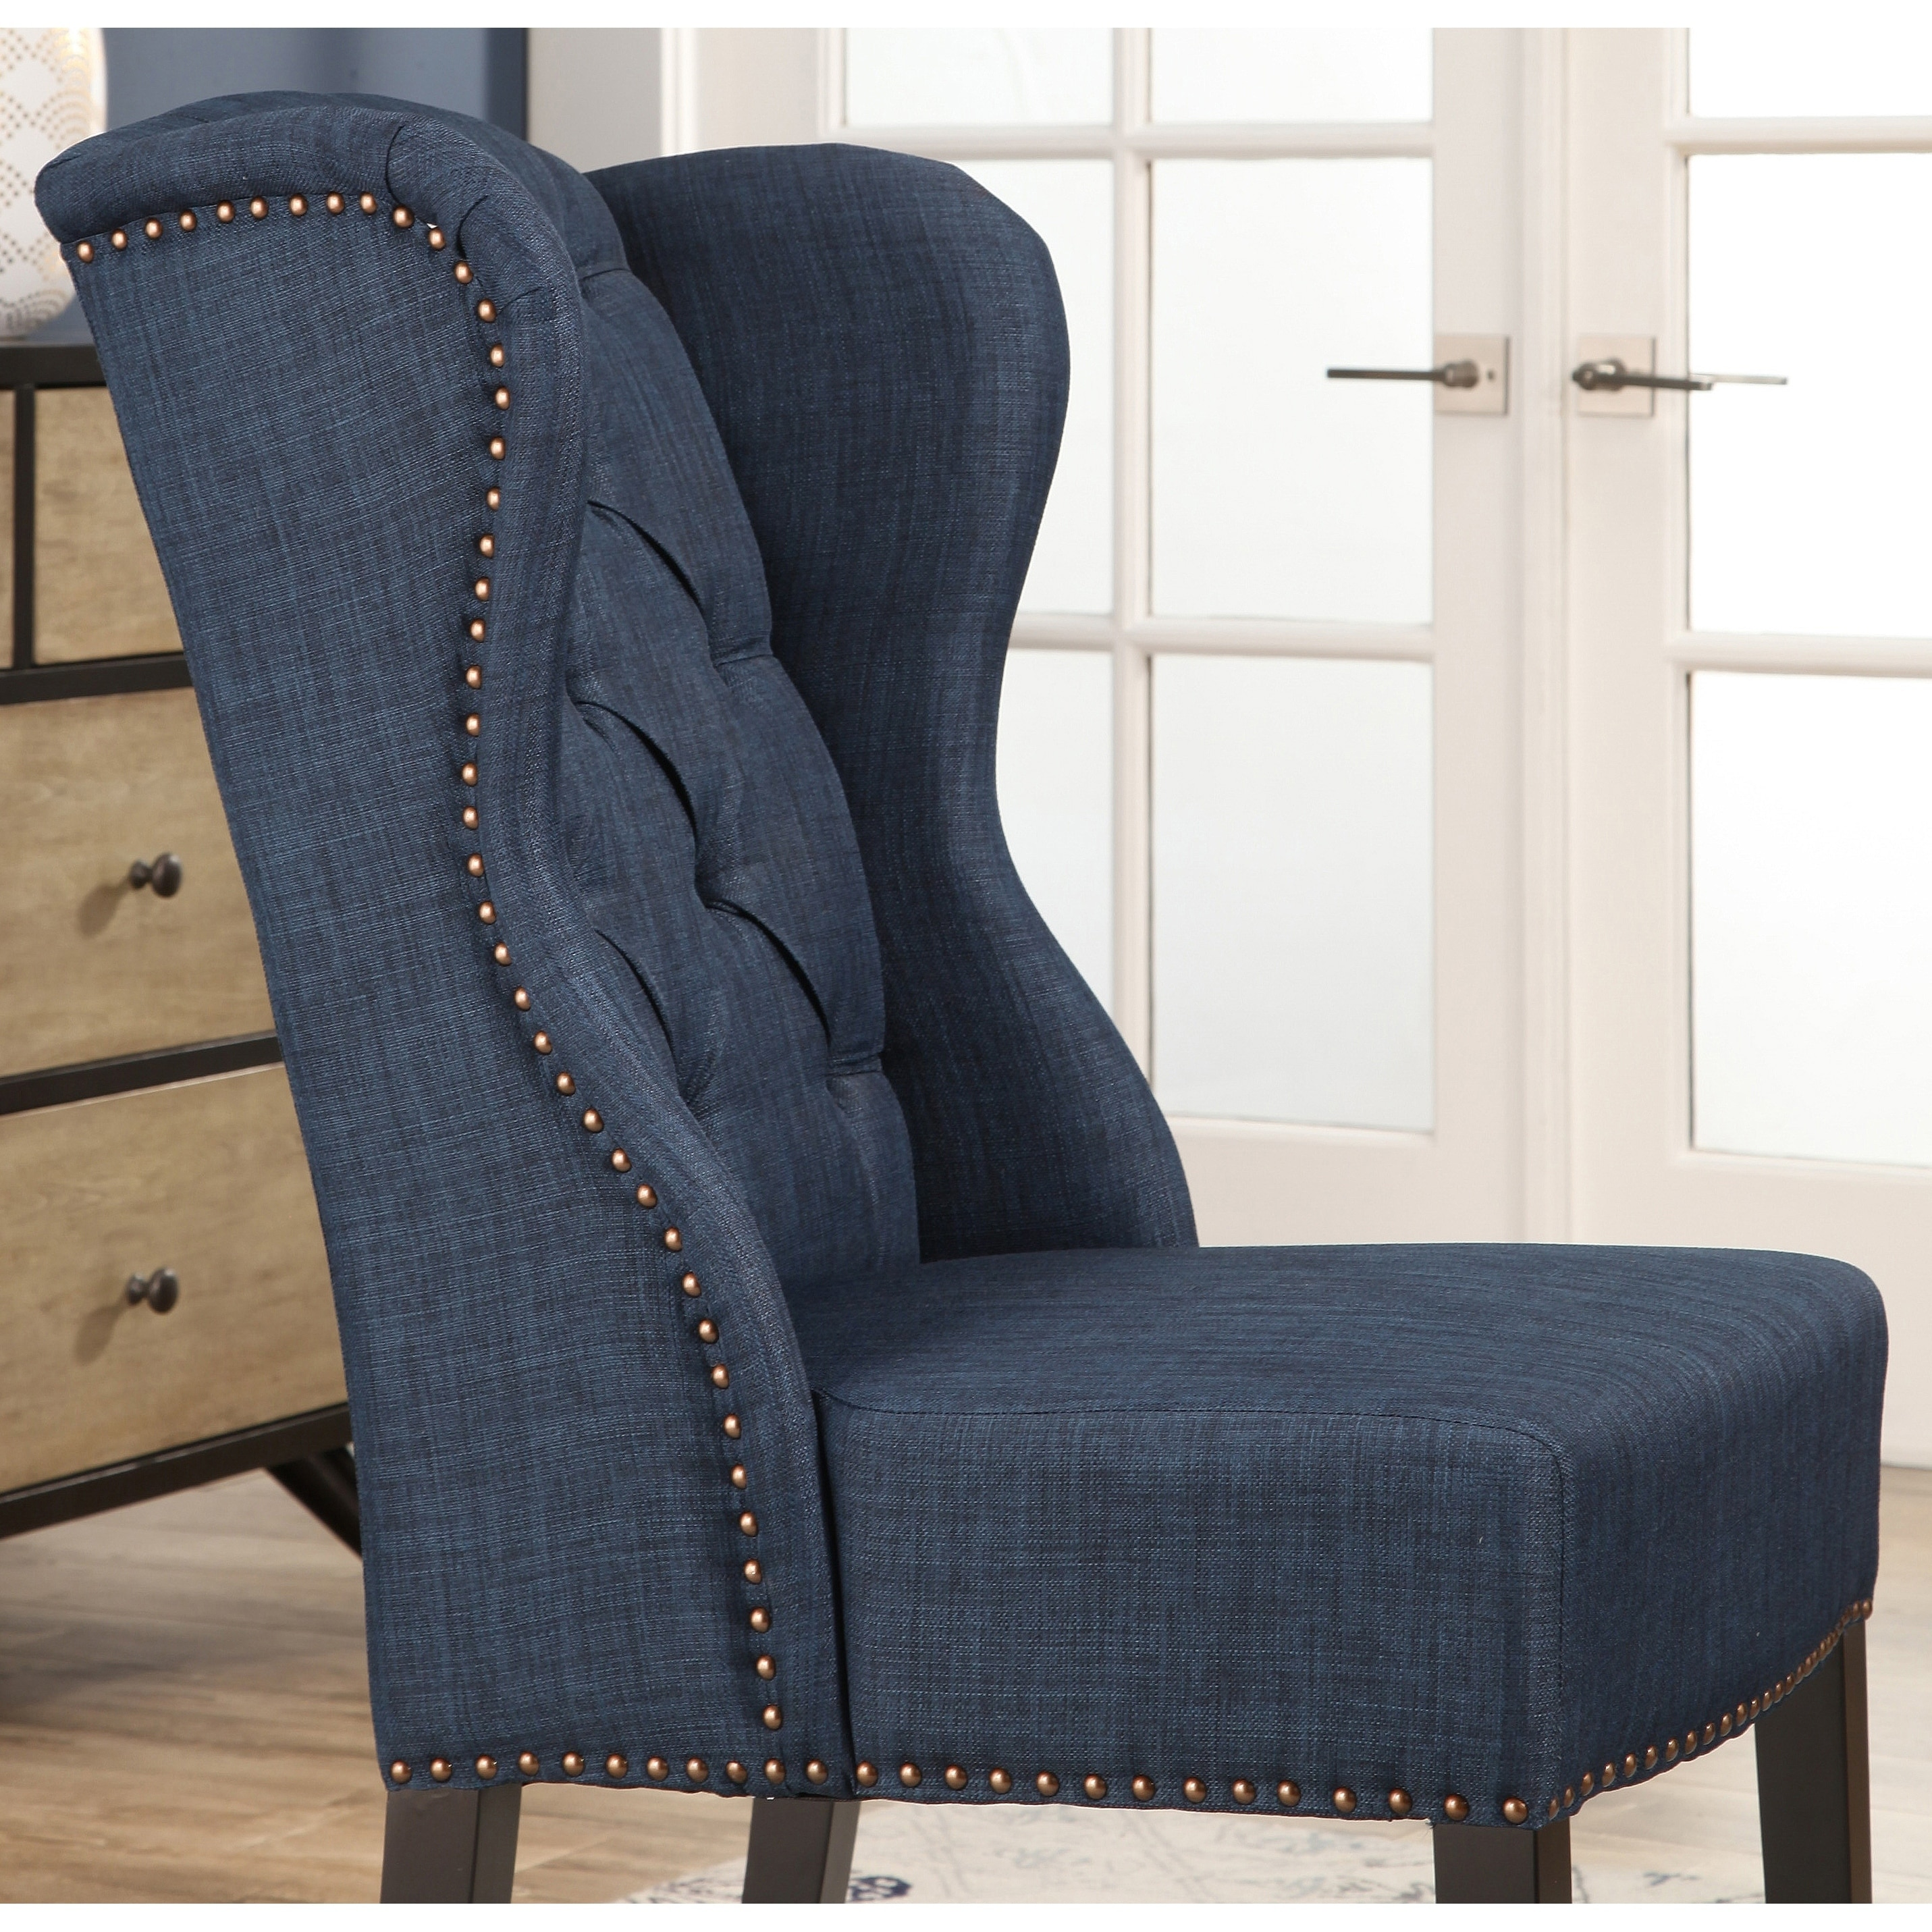 Abbyson Sierra Tufted Fabric Wingback Dining Chair Free Shipping Today 17895309